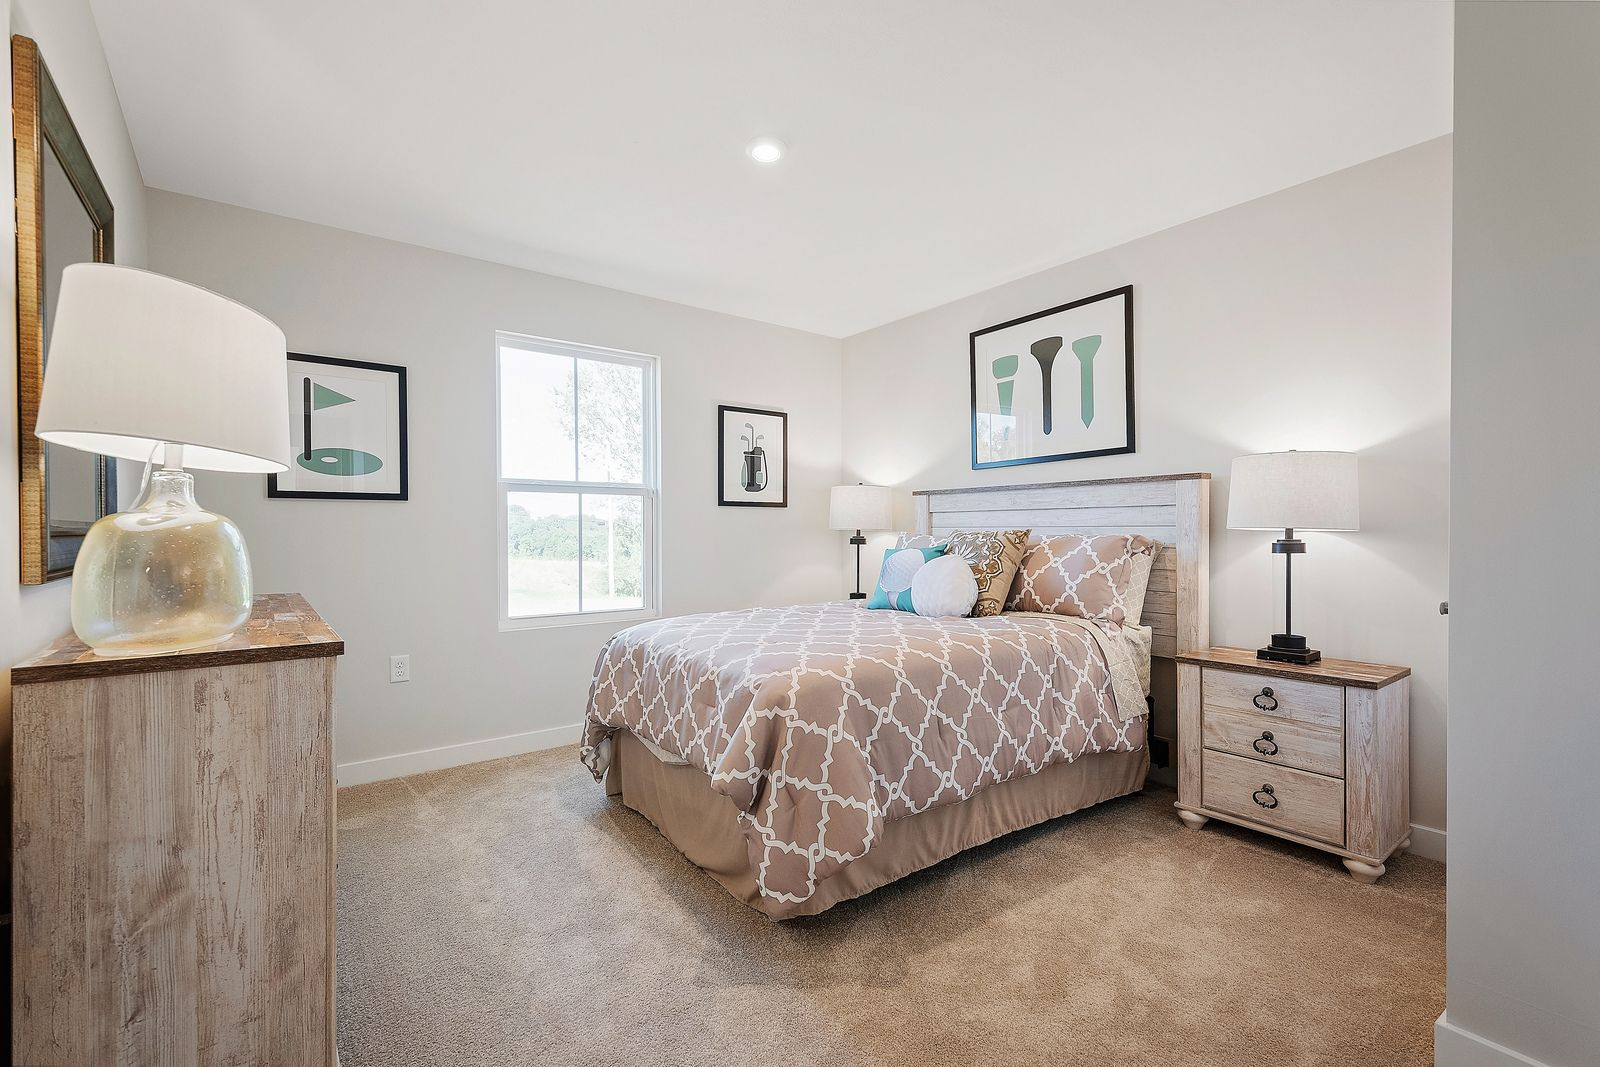 Bedroom featured in the Dominica Spring By Ryan Homes in Akron, OH